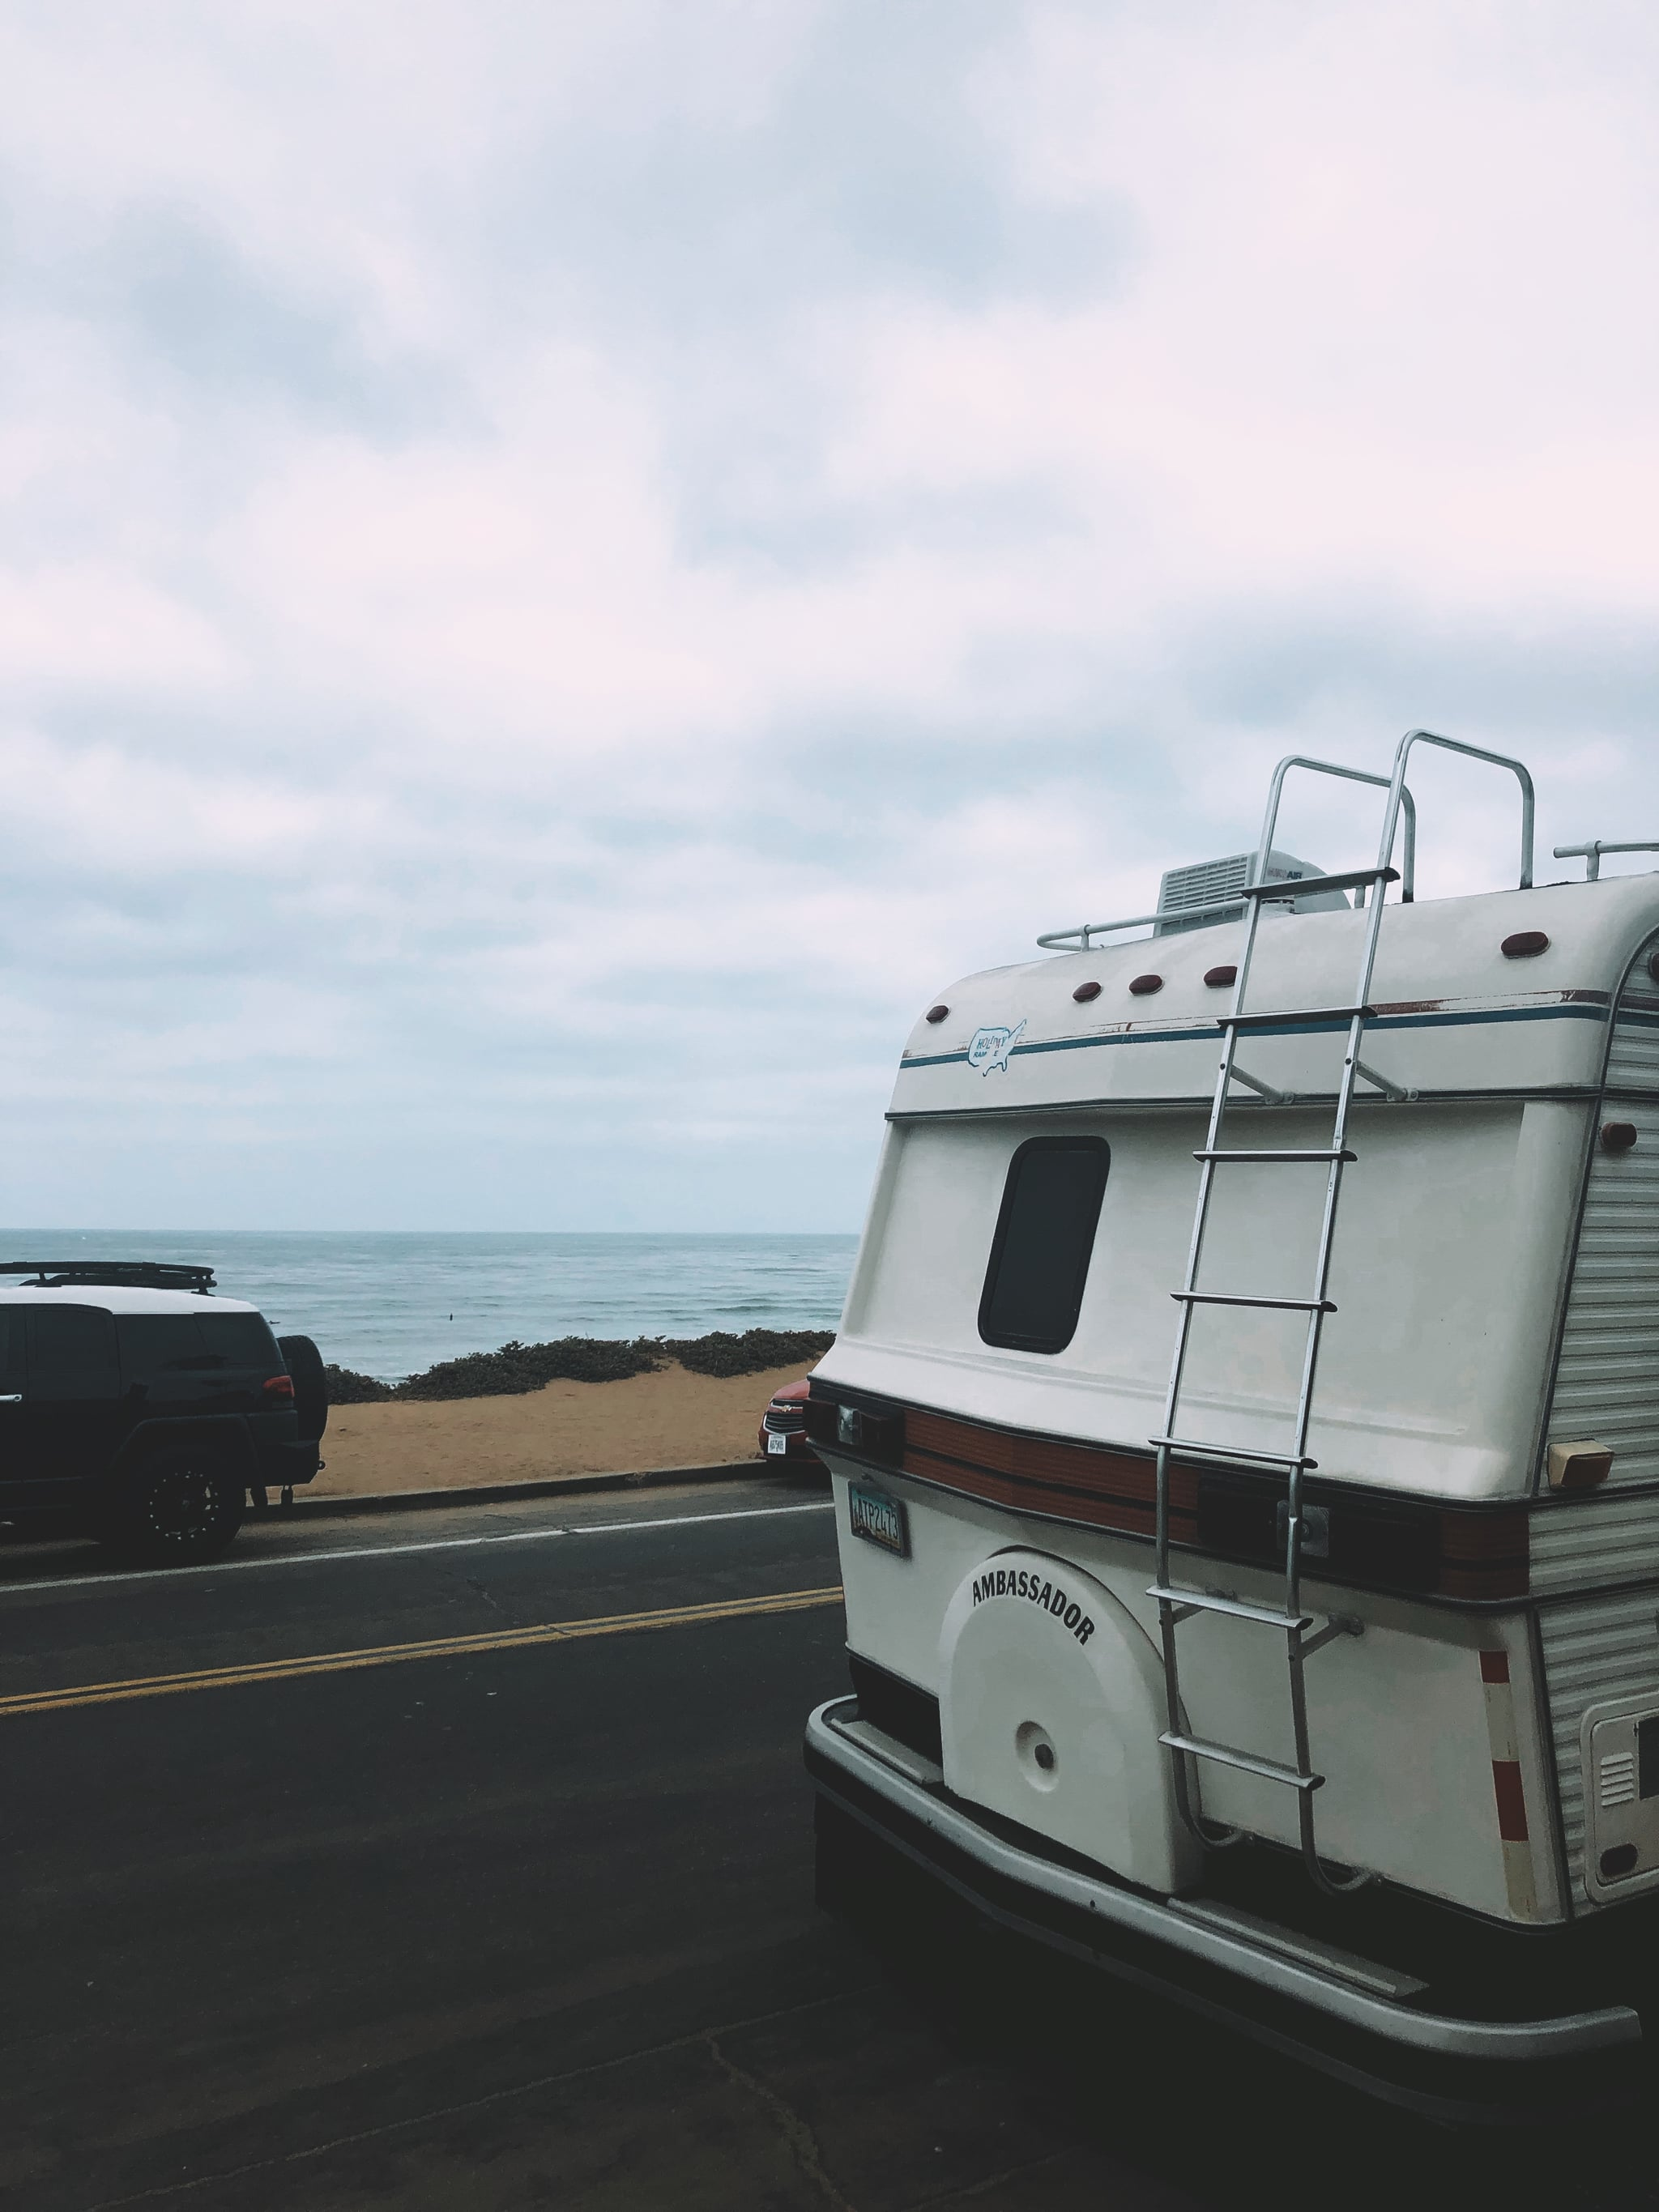 One day we parked it at Sunset Cliffs for the Fourth of July!